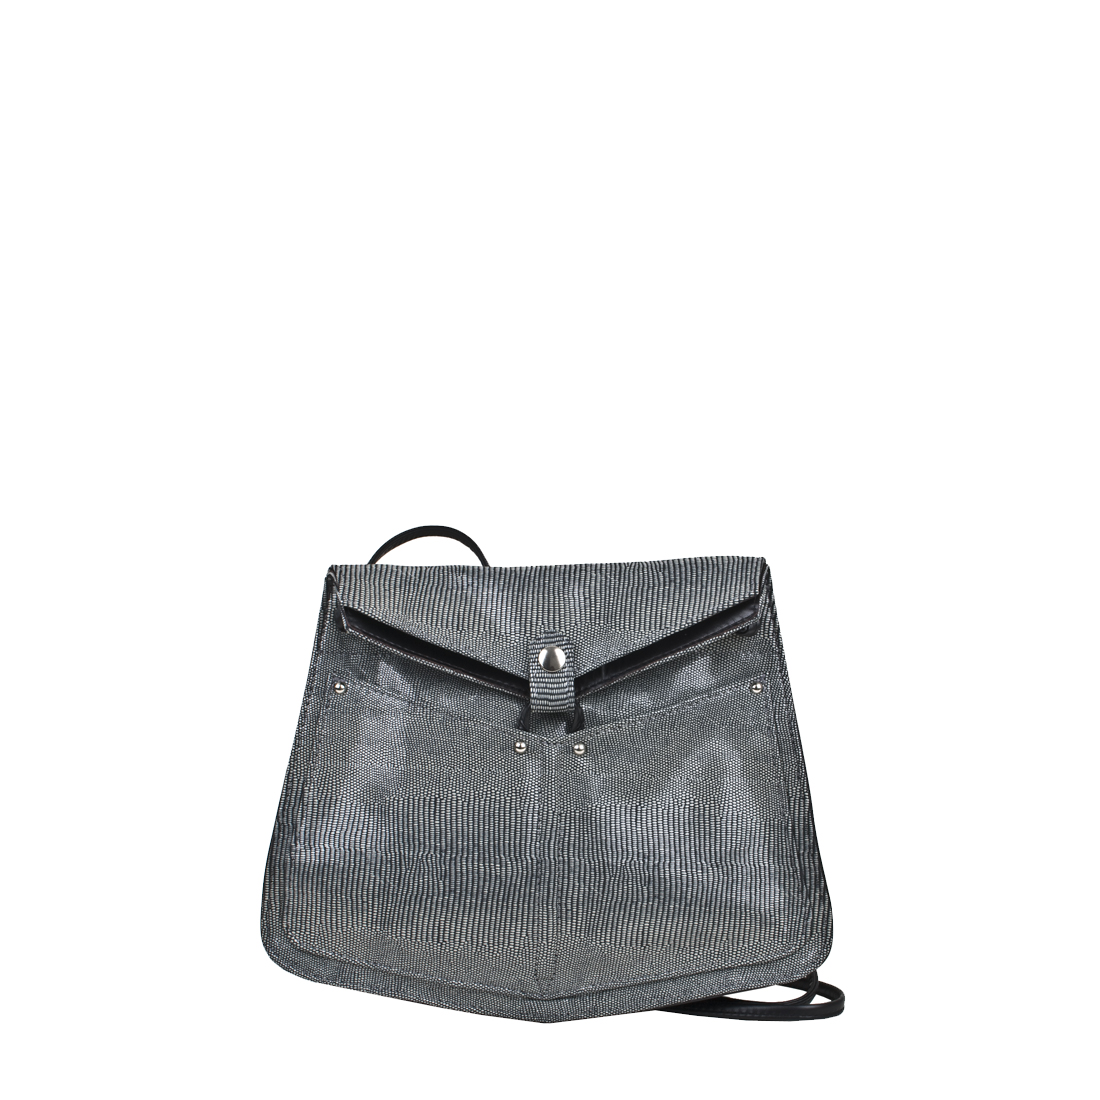 Urban Courmayeur Leather Across Body Bag